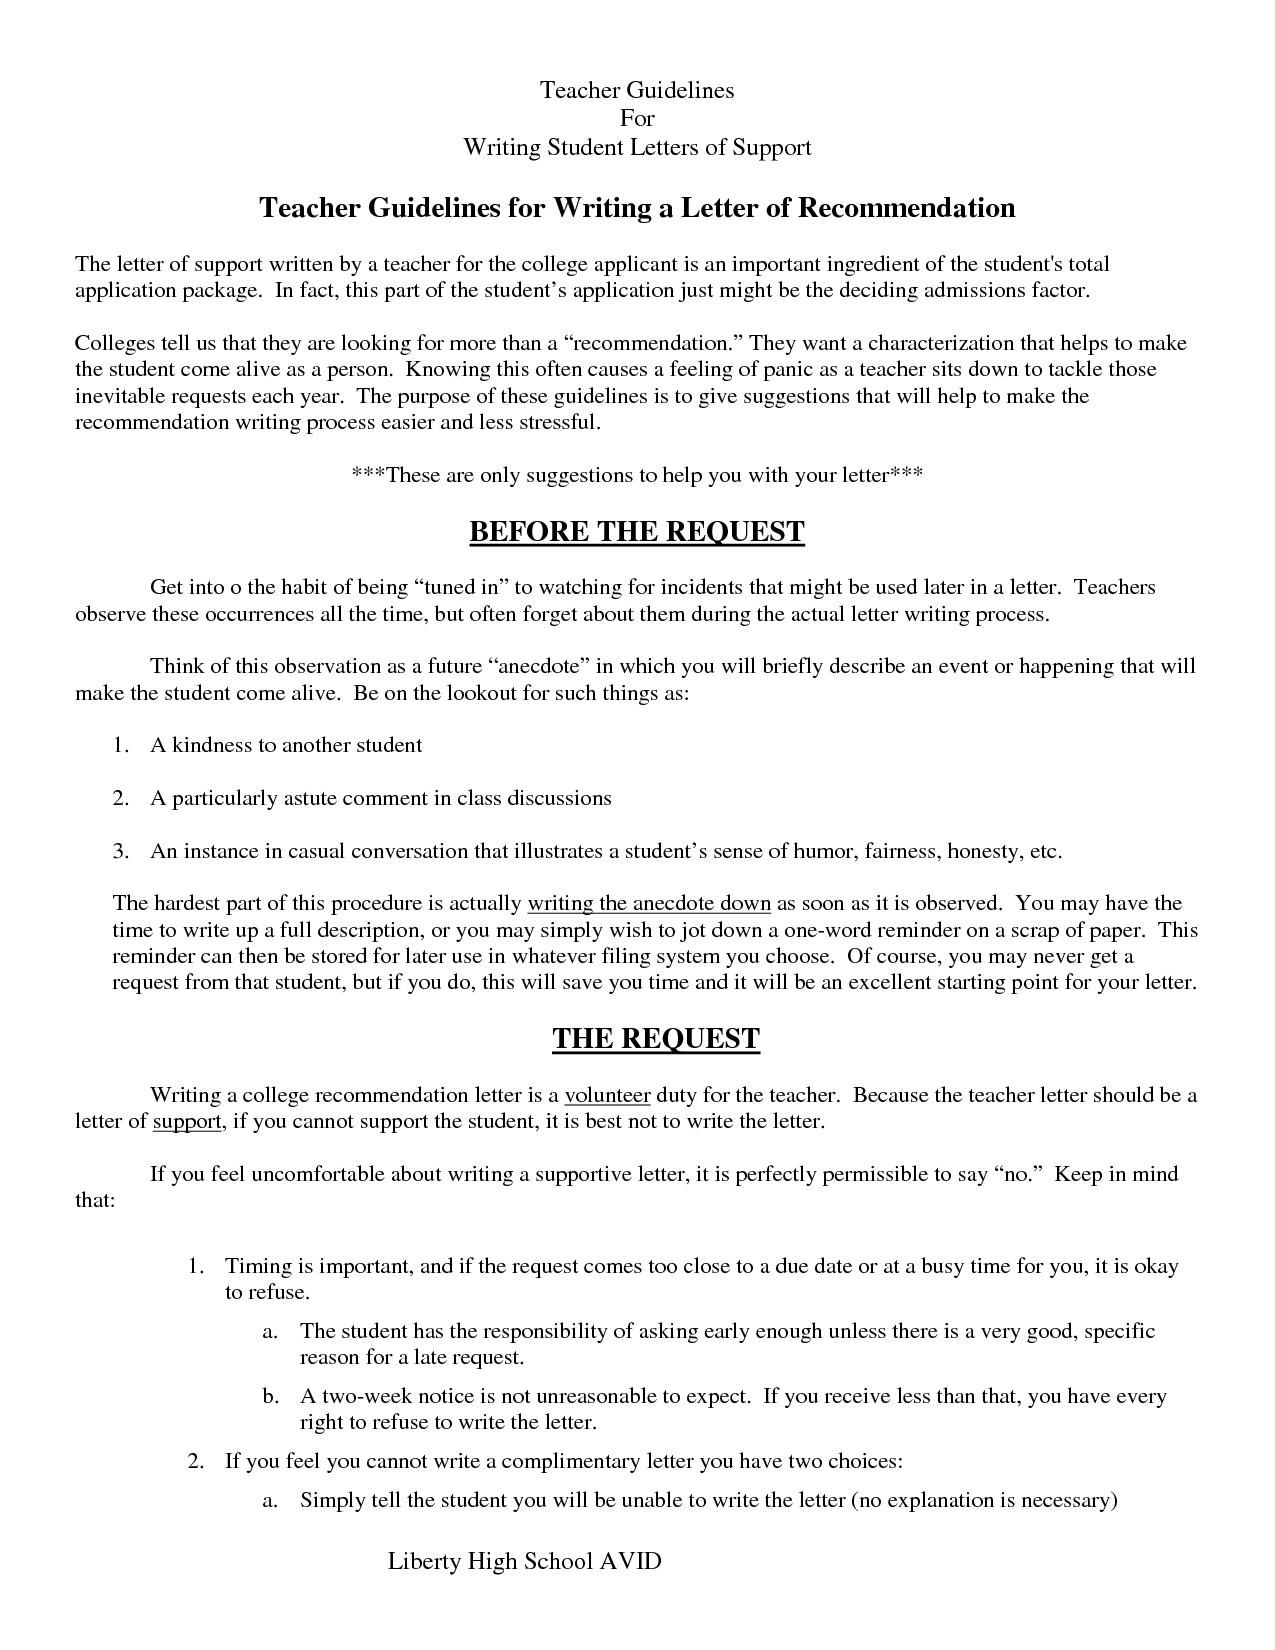 Letter Of Recommendation Examples New 8.sample Letter Recommendation Writtena Teacher  Resumes .